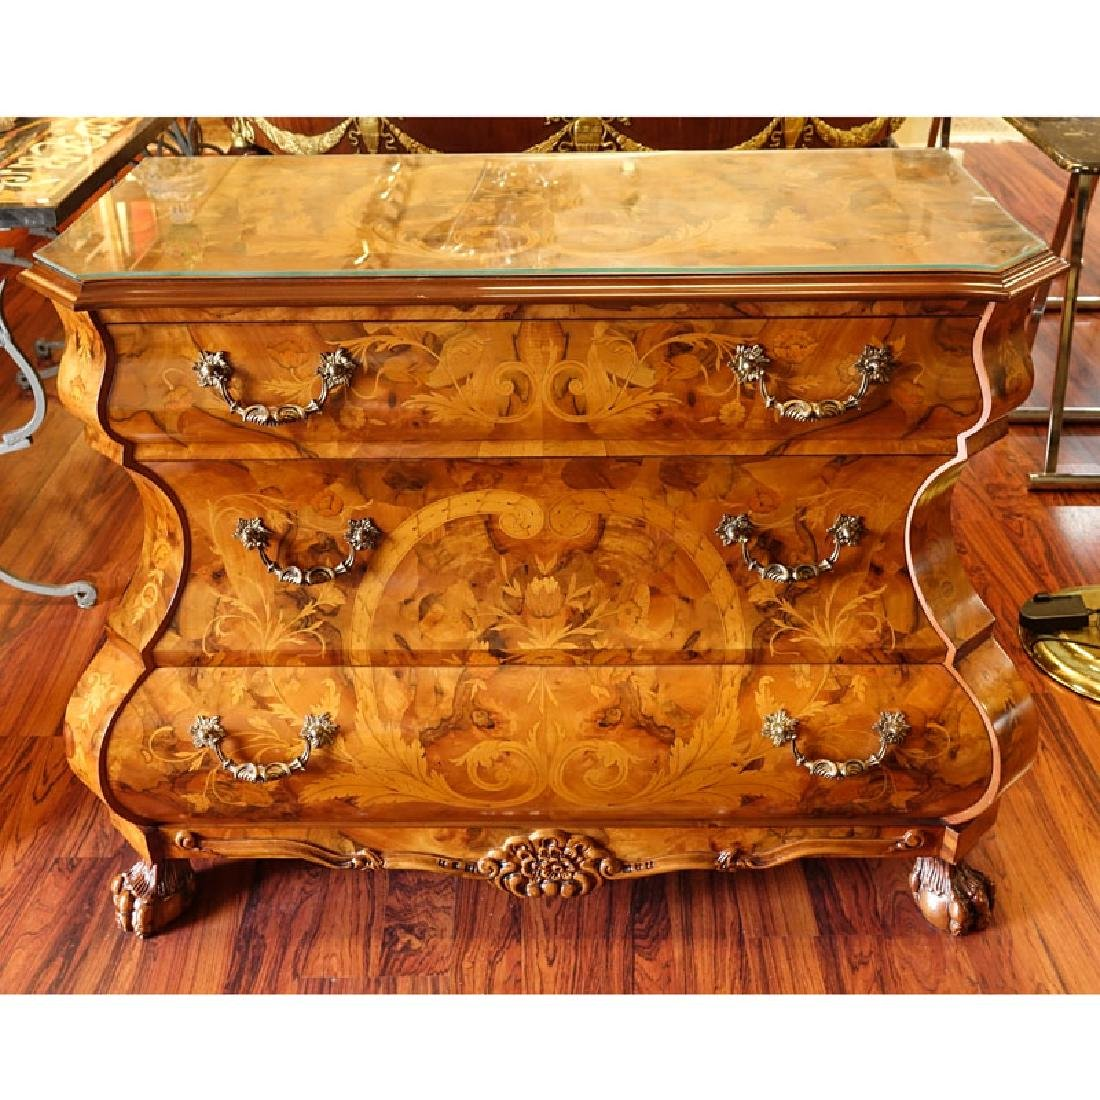 Modern Dutch Style Marquetry Inlaid Chest of Drawers. - 2